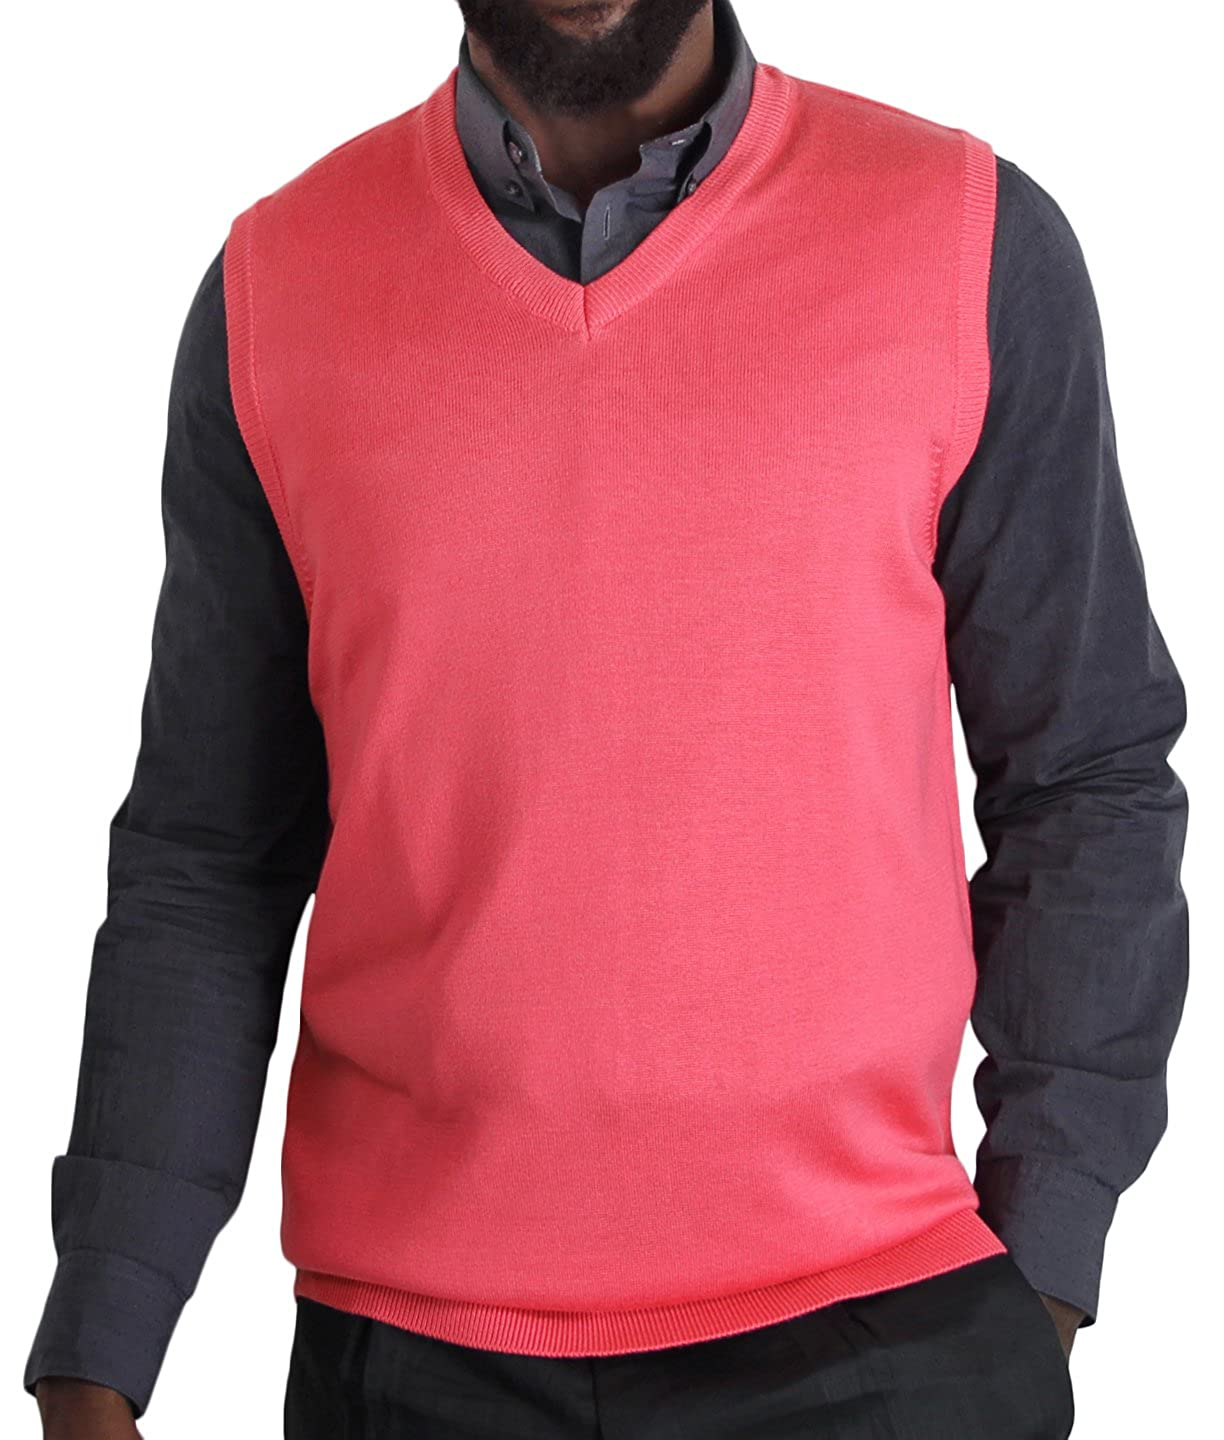 Blue Ocean Solid Color Sweater Vest at Amazon Men's Clothing store: